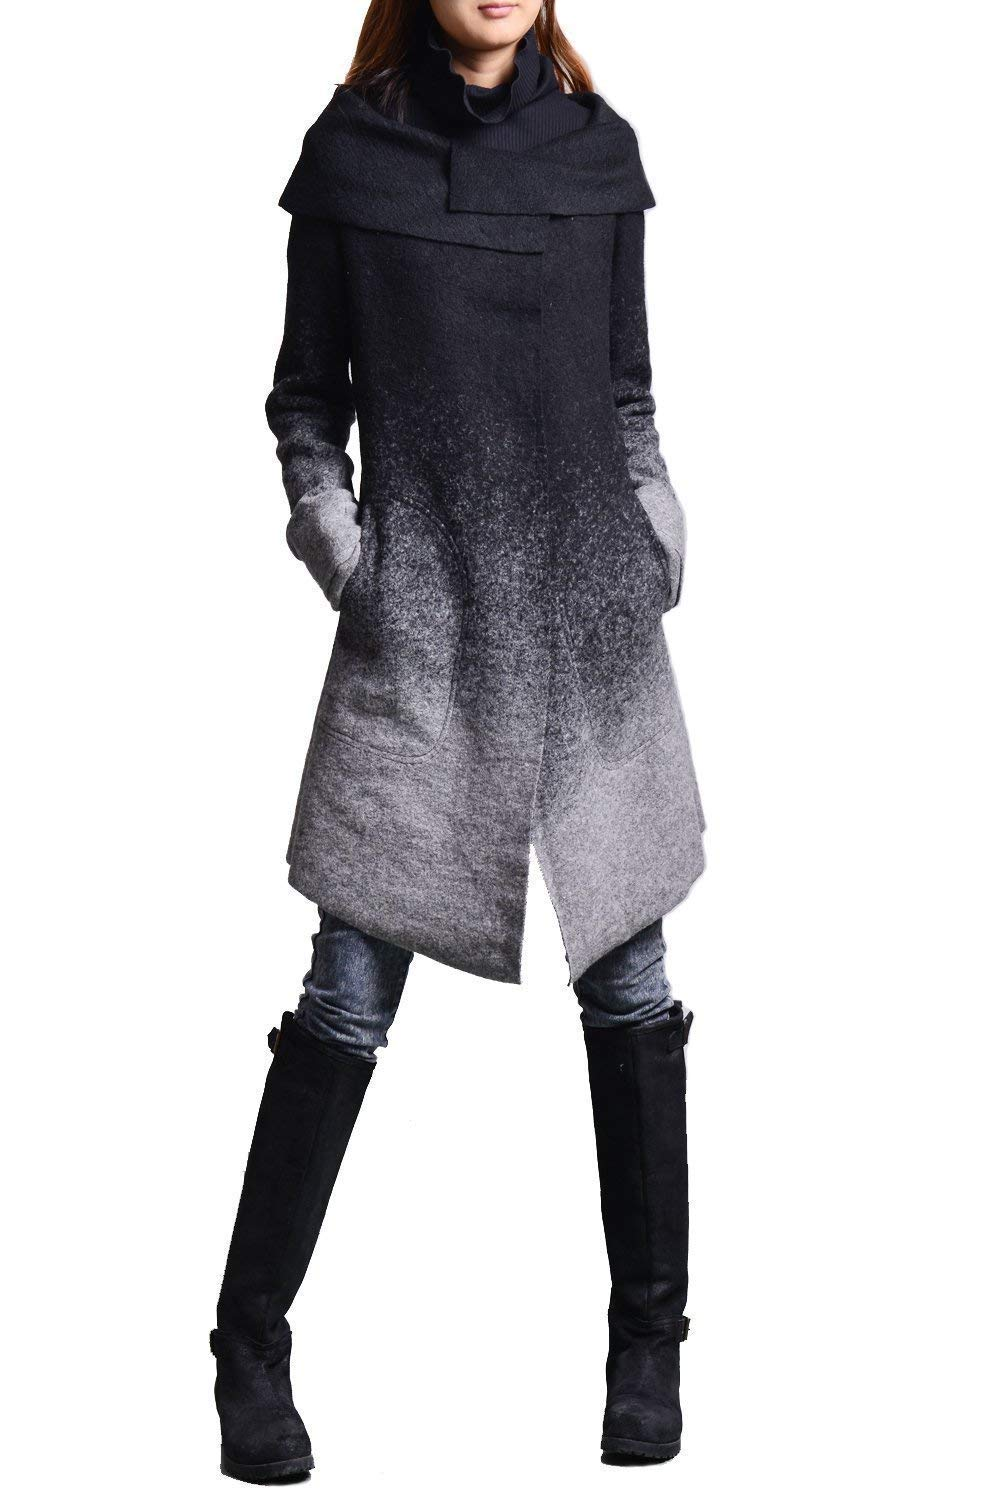 Free Shipping-Women's Gradient Woolen Coat + Cotton Top Set Black